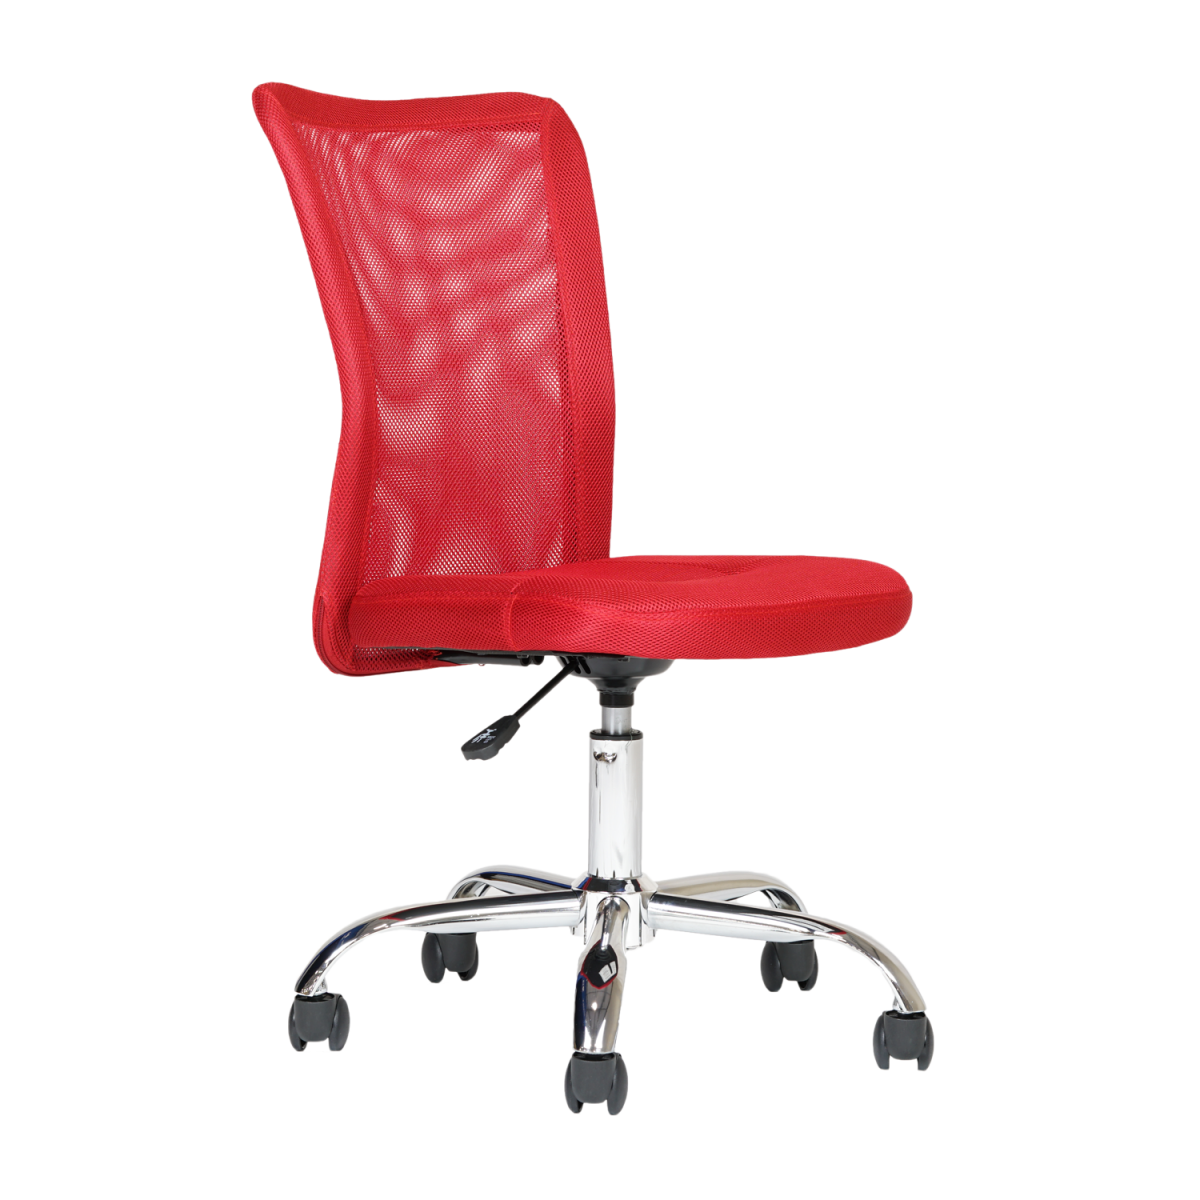 Double Star Furniture Antrim Red Desk Chair Double Star